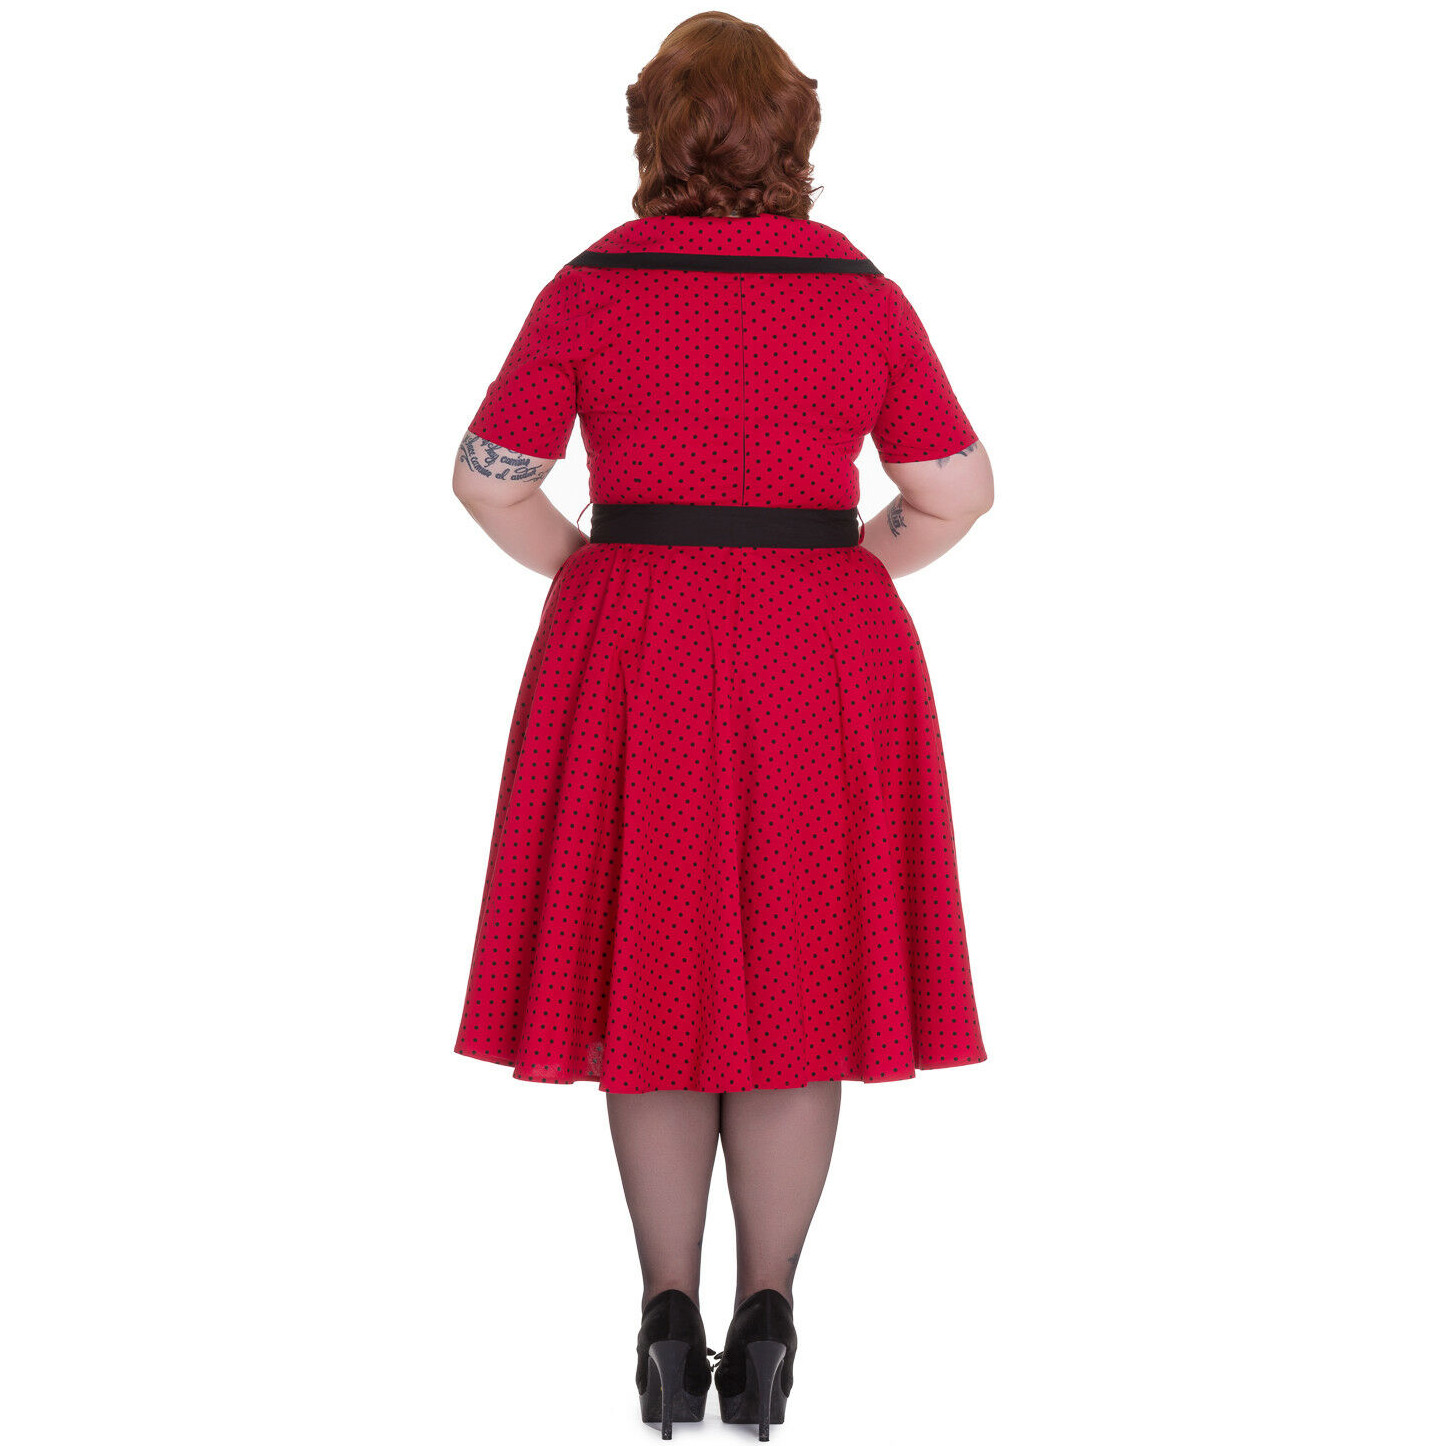 Hell-Bunny-40s-50s-Pin-Up-Swing-Dress-MIMI-Polka-Dot-Black-Red-All-Sizes thumbnail 13